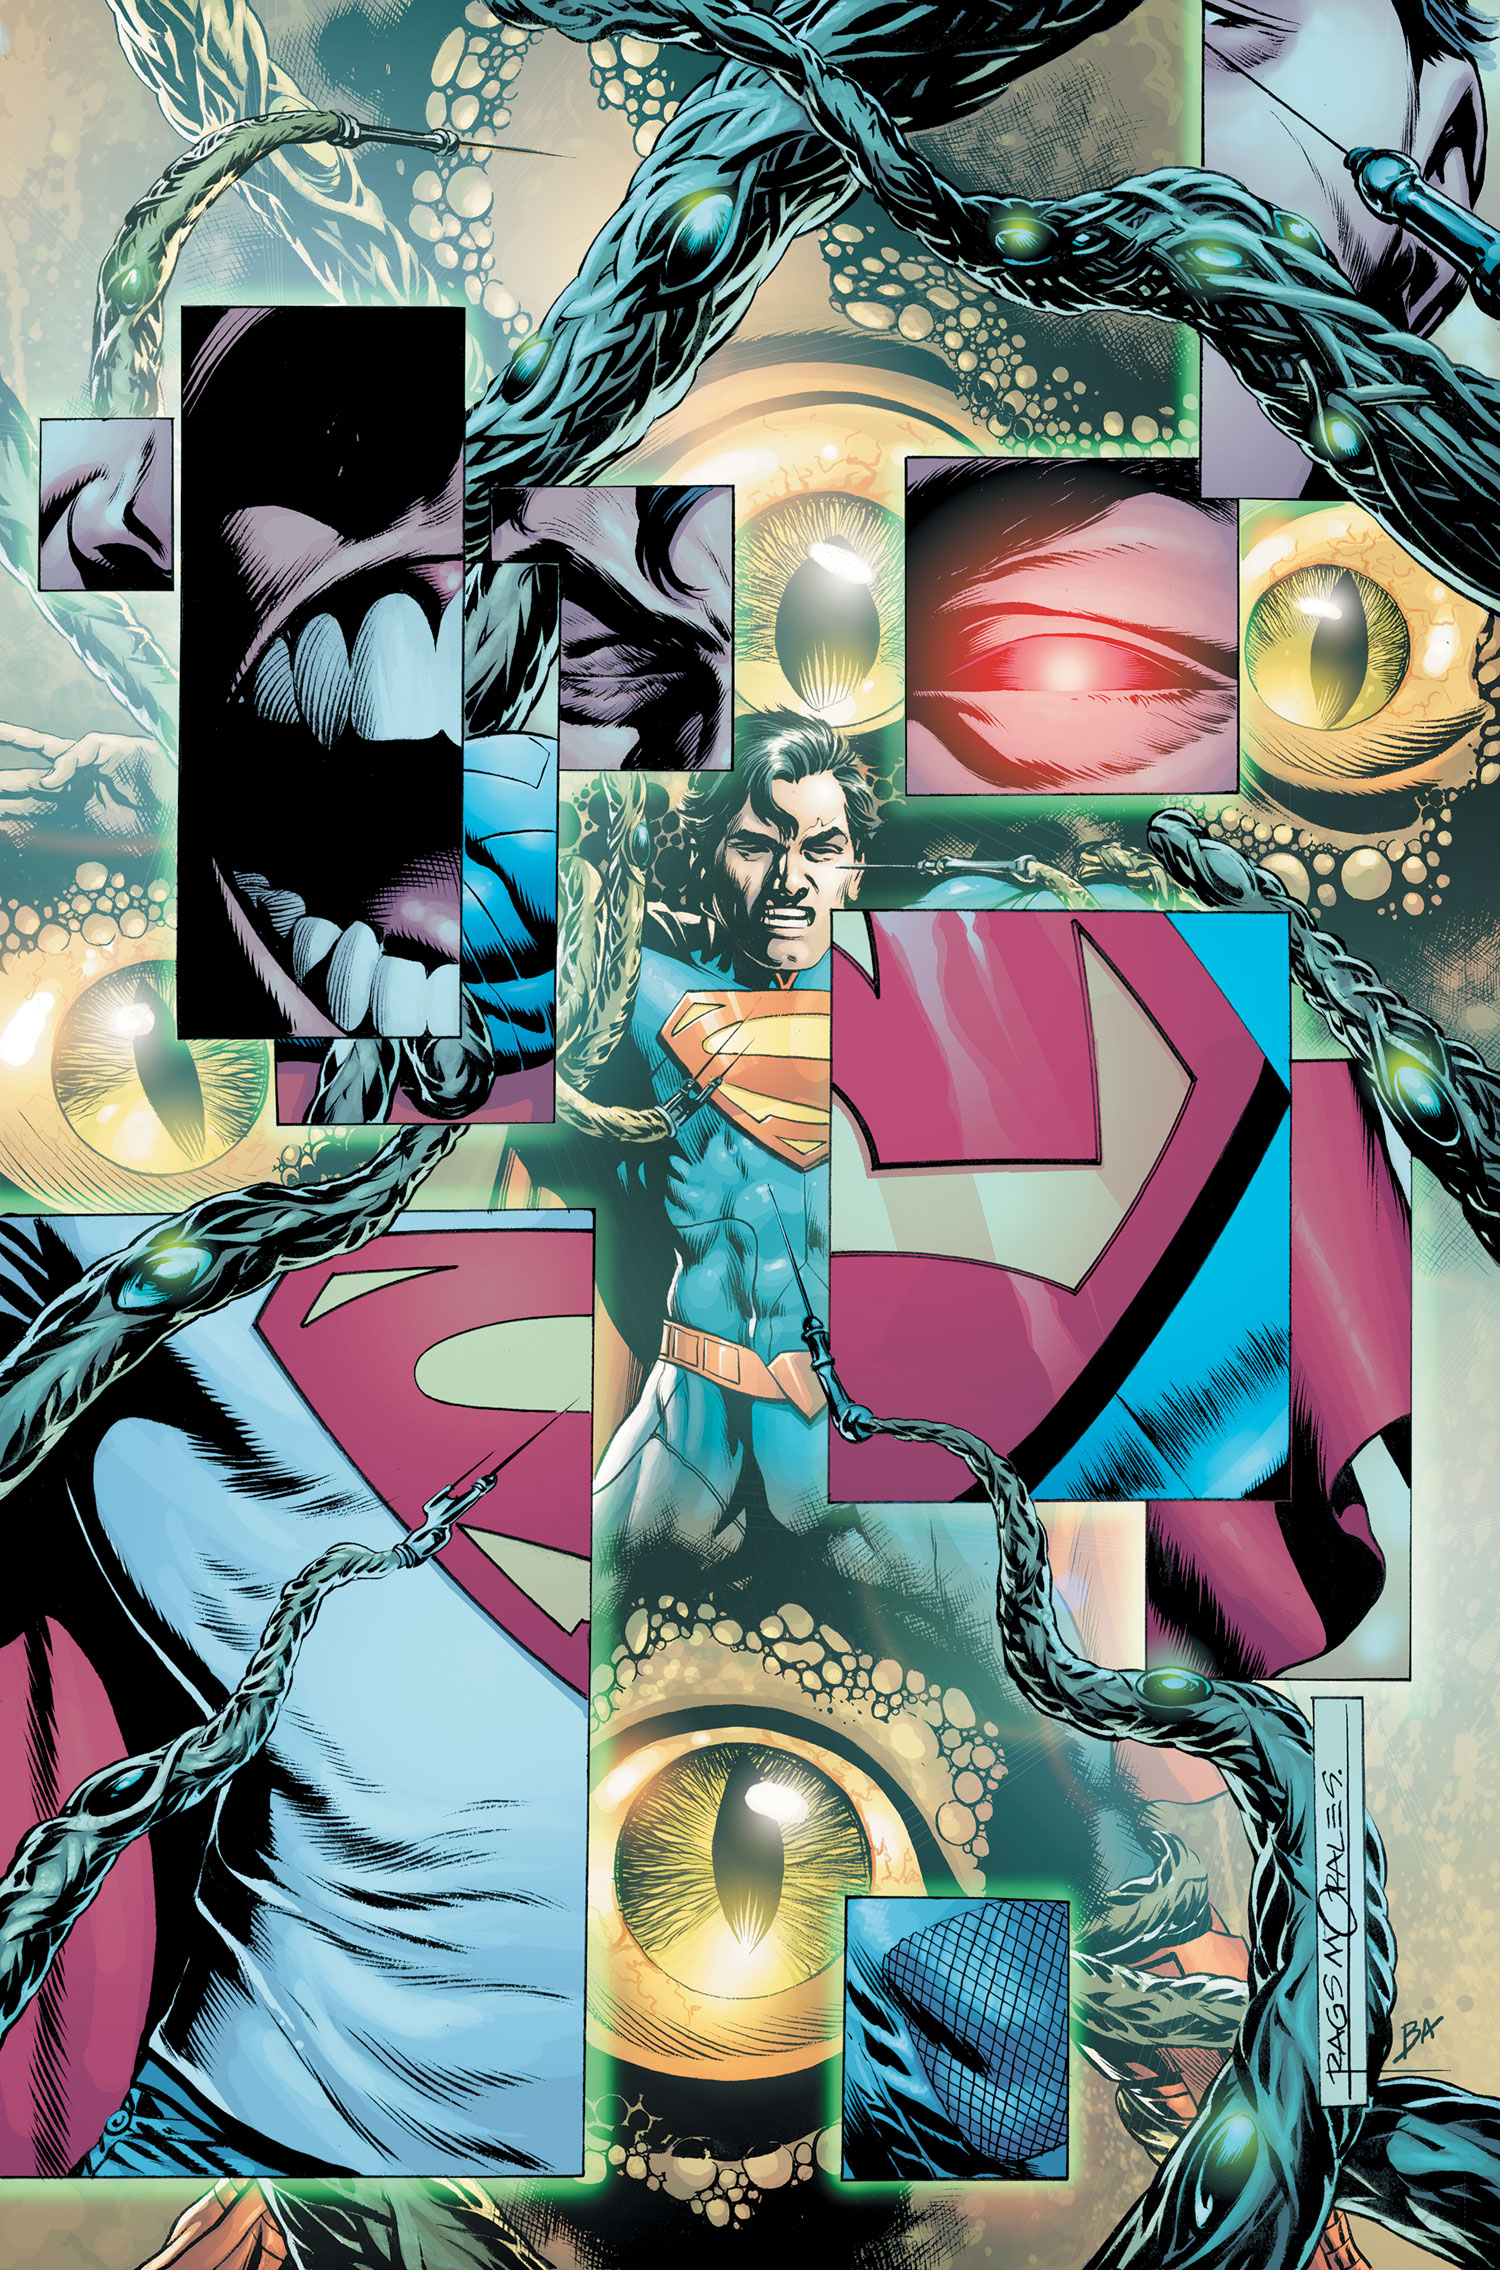 Action Comics: At the End of Days